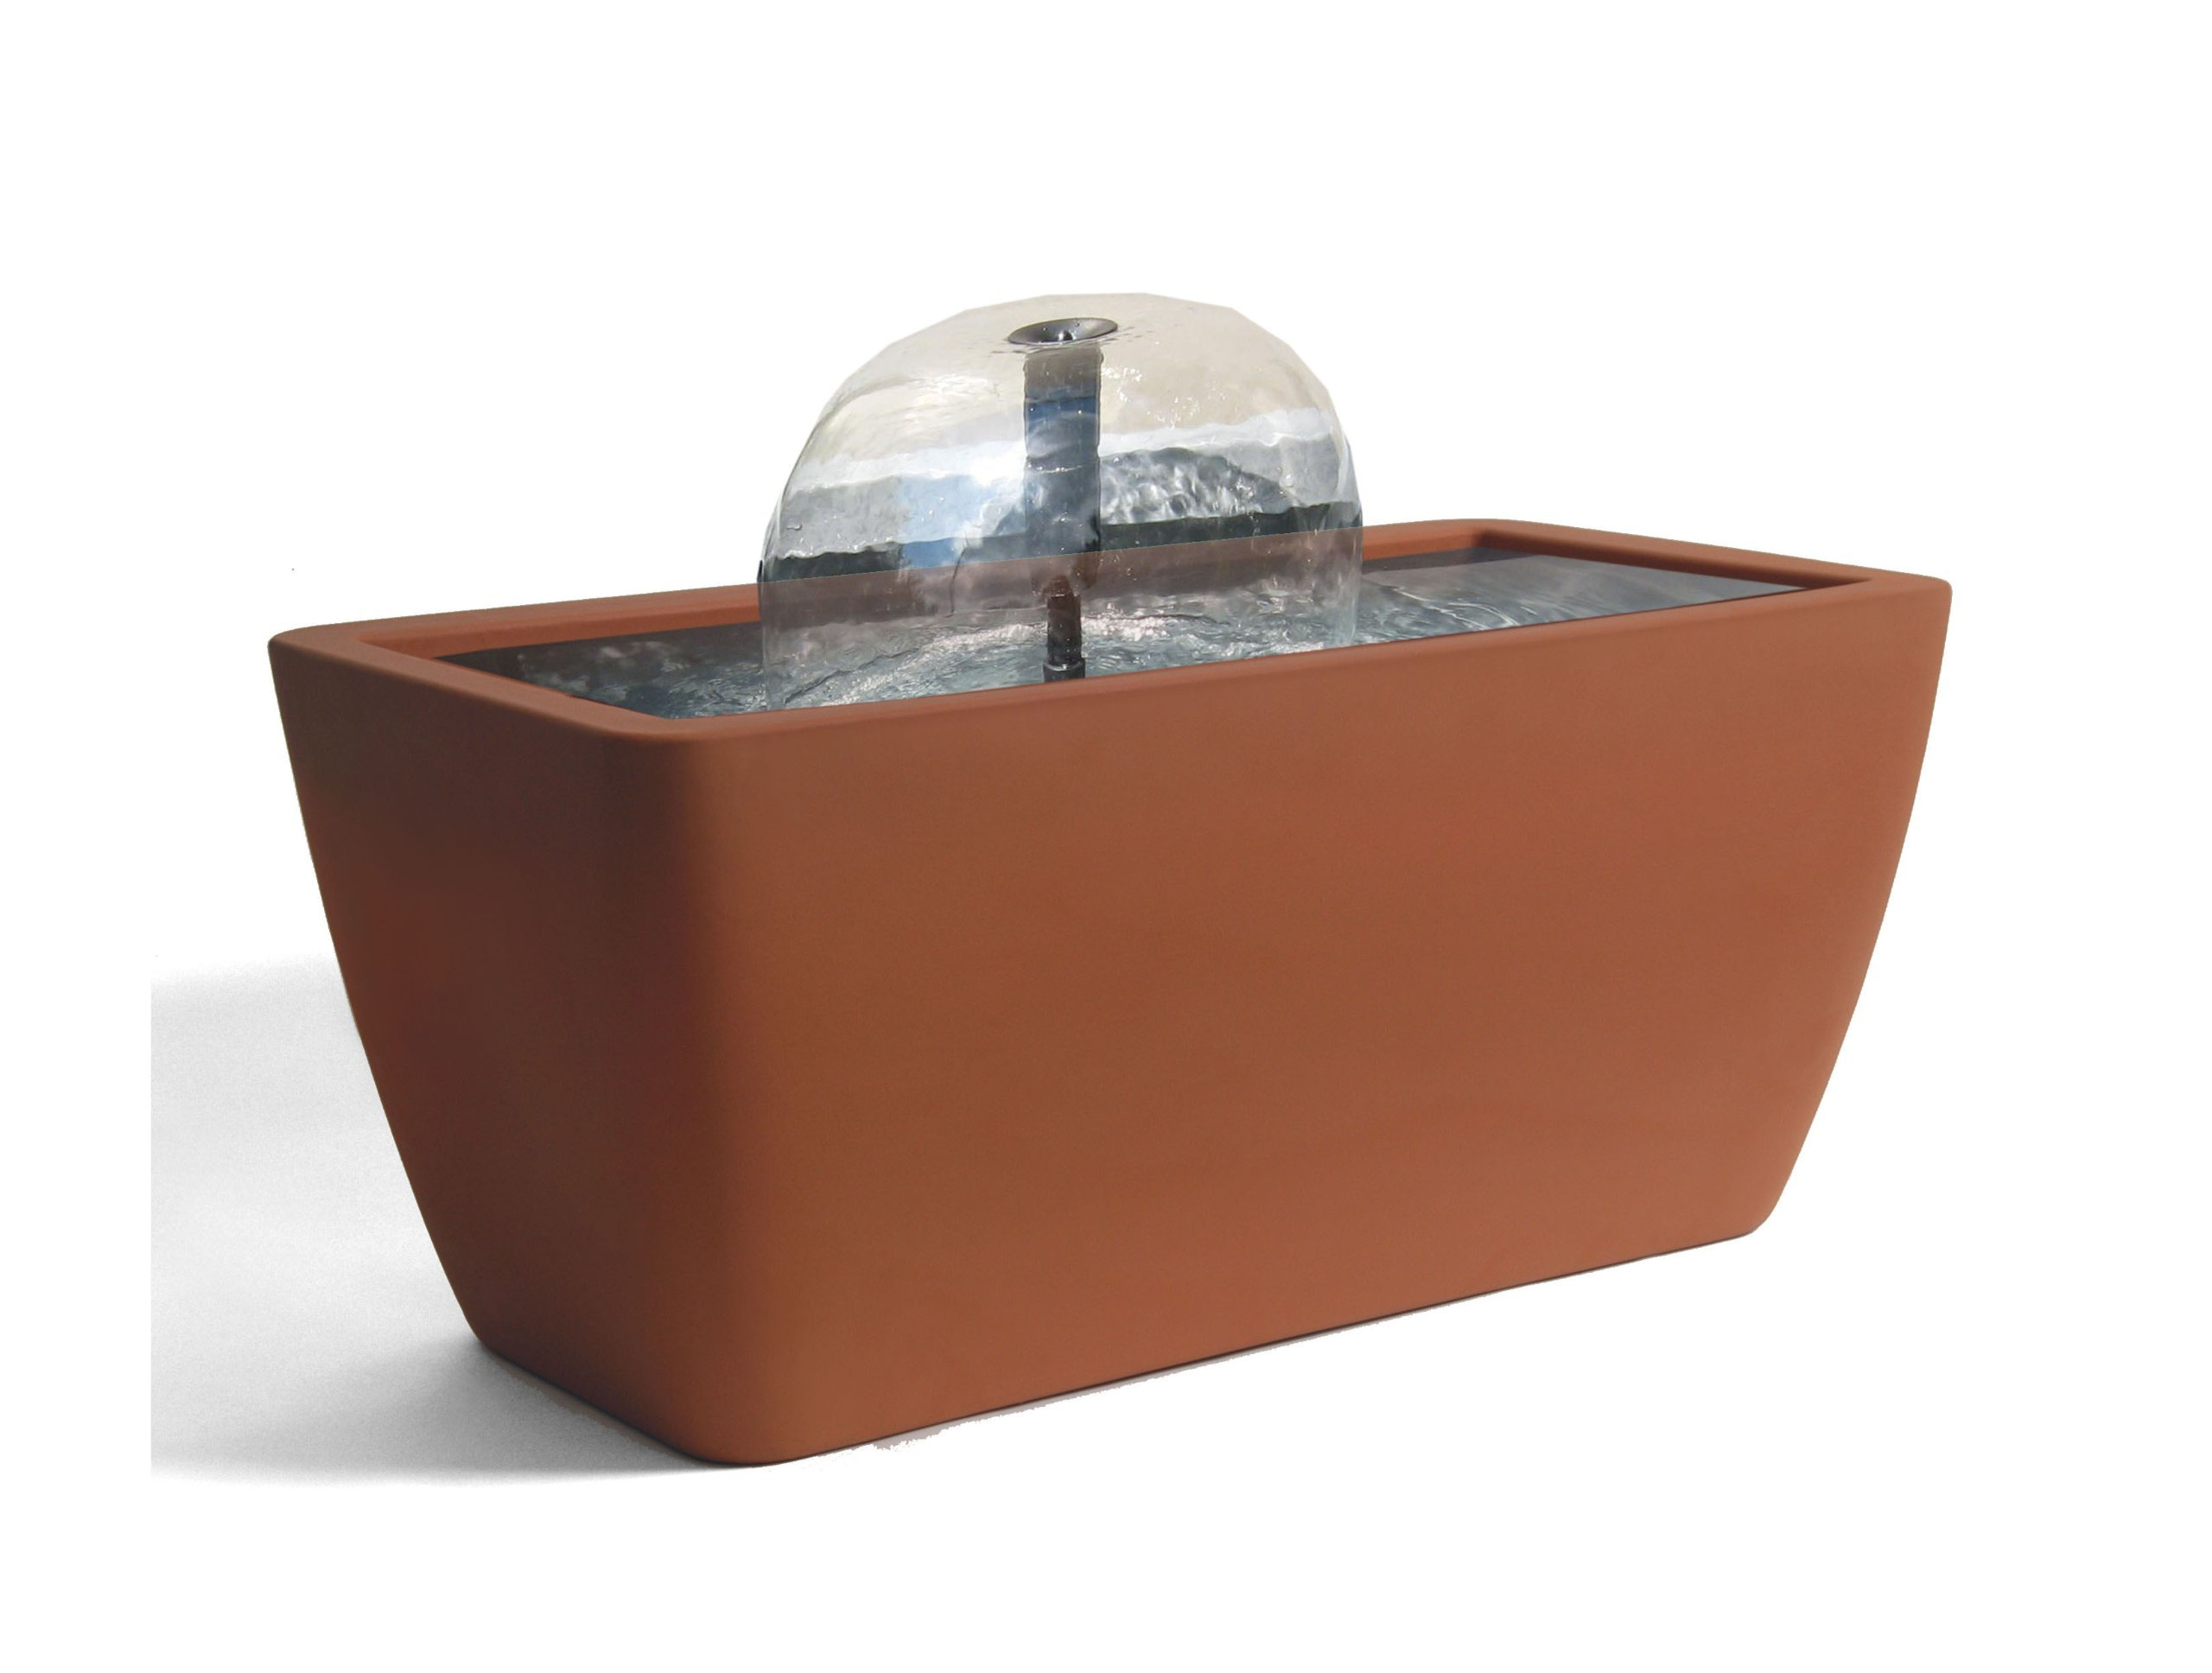 Algreen Manhattan Contemporary Terra Cotta Patio and Deck Pond Water Feature Kit with Light, 50-Gallon